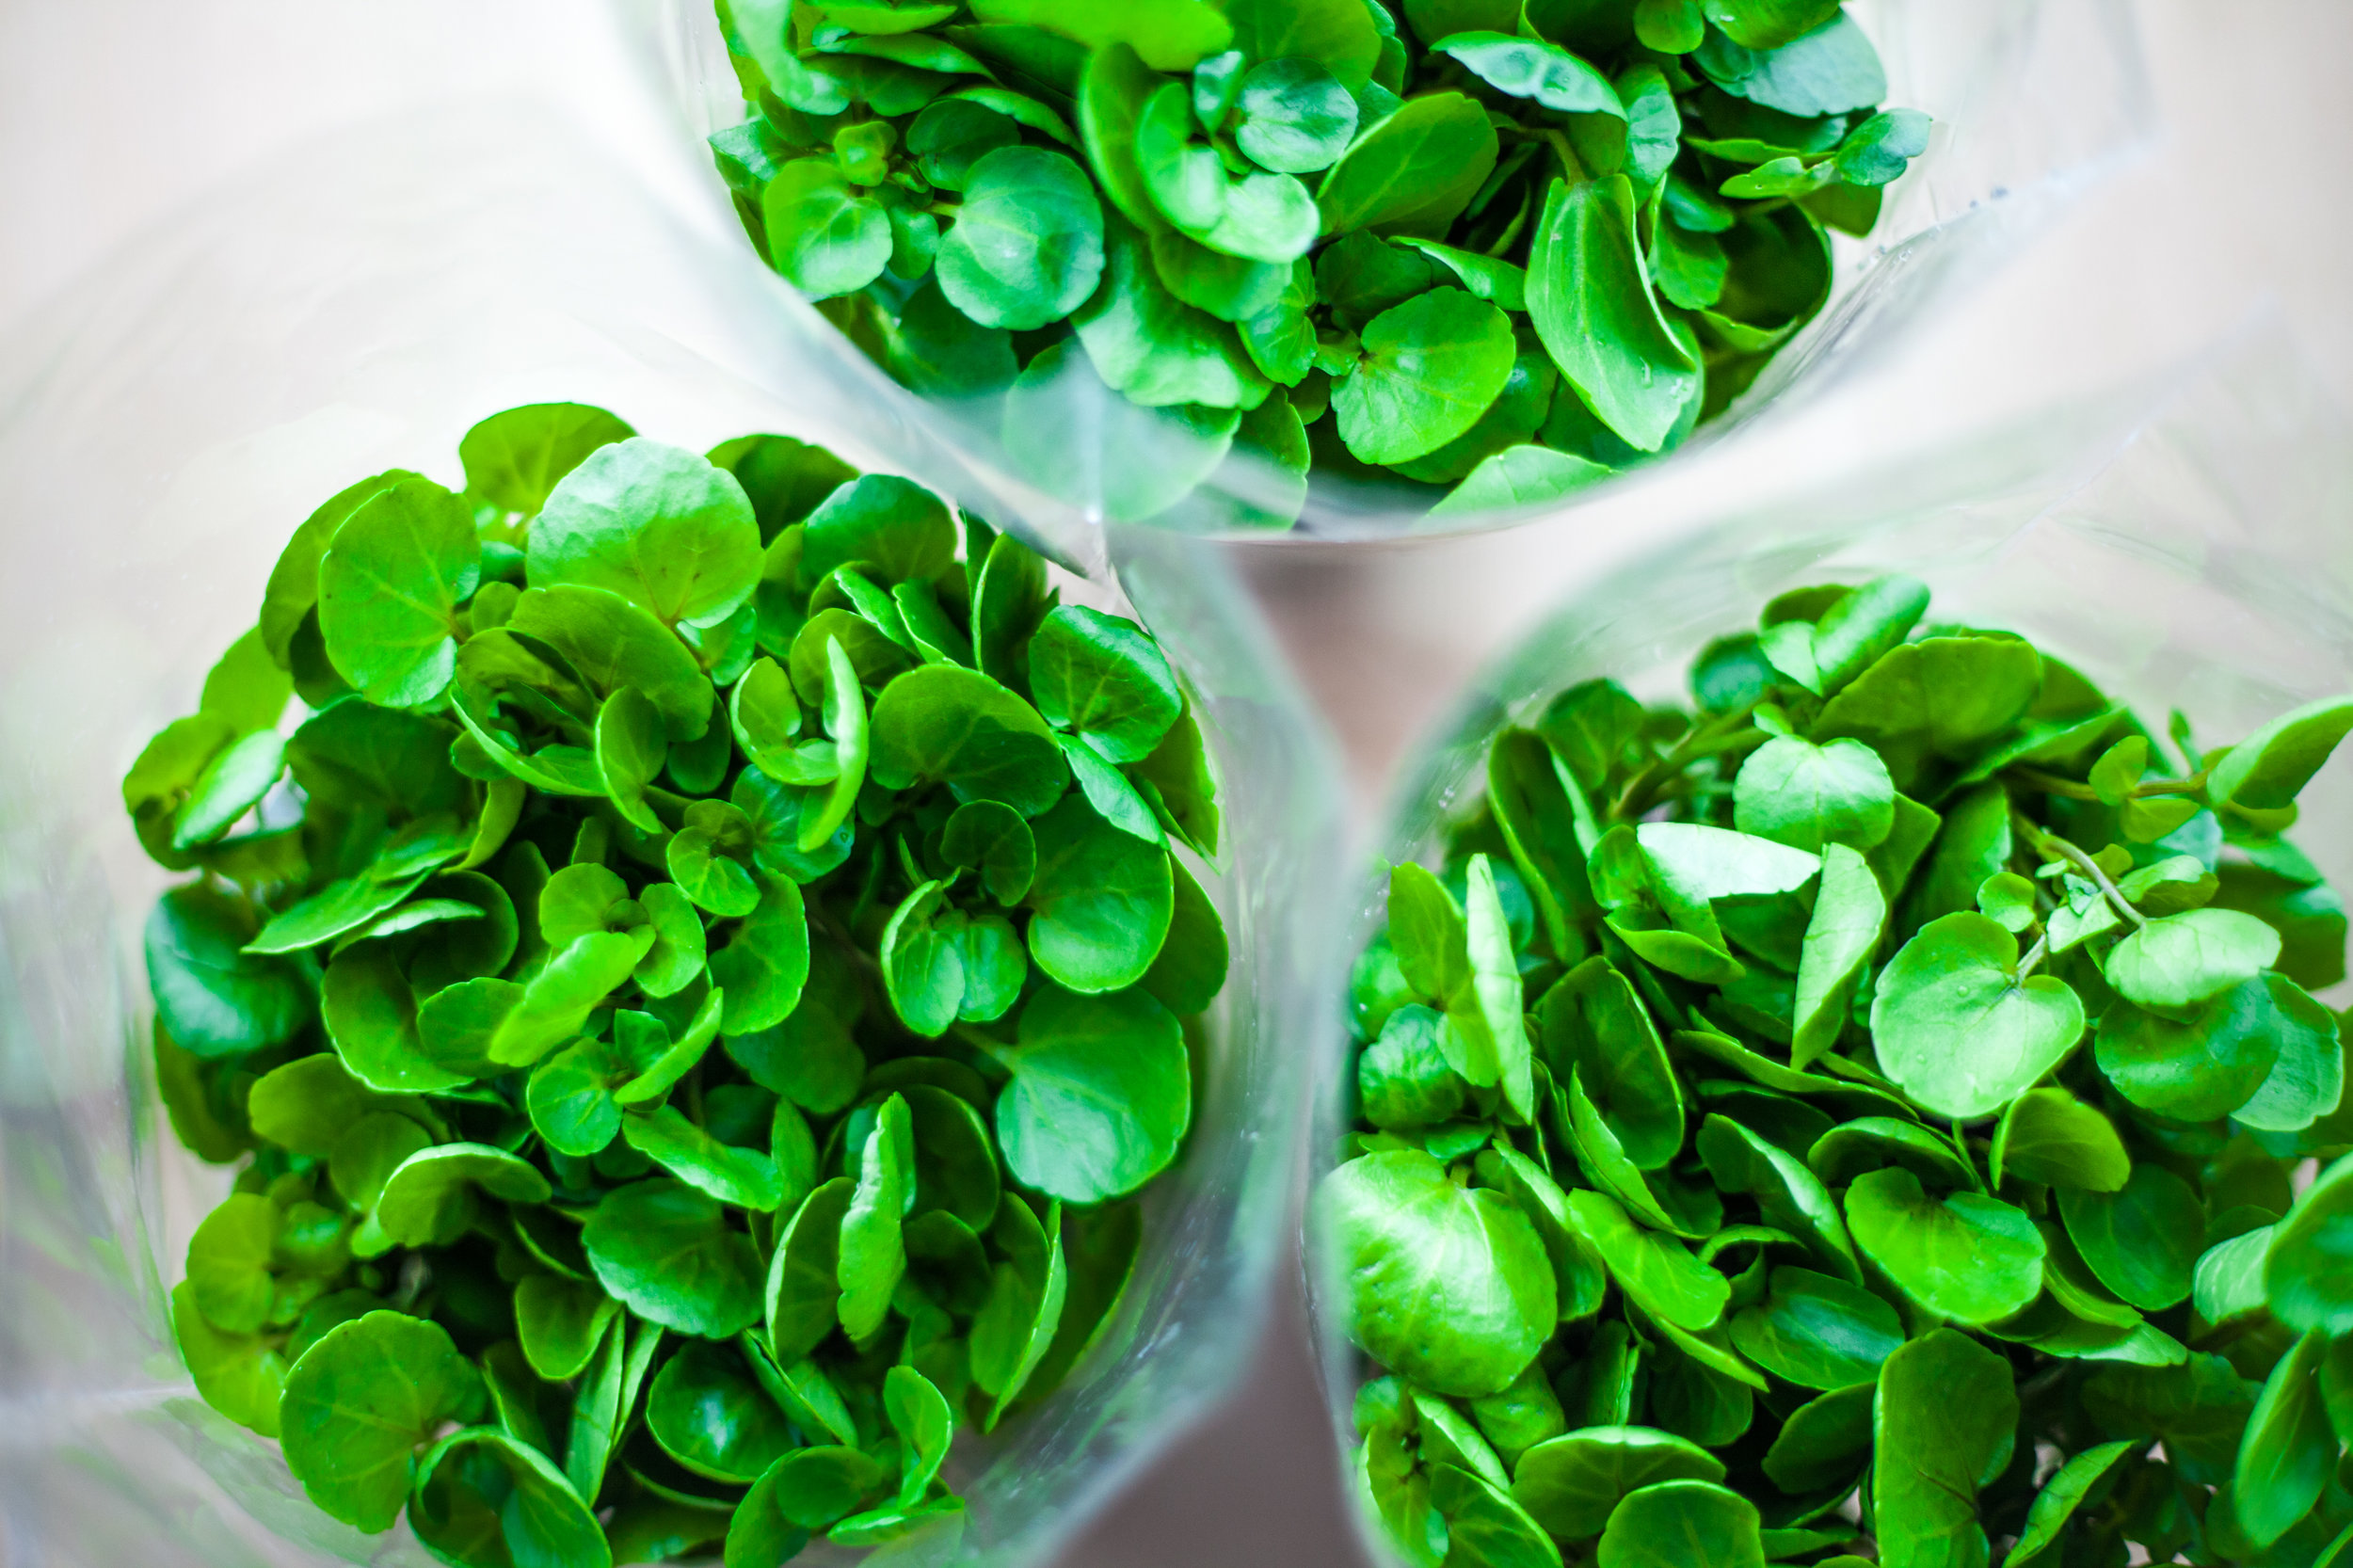 Three Watercress Bunches on White Background.jpg